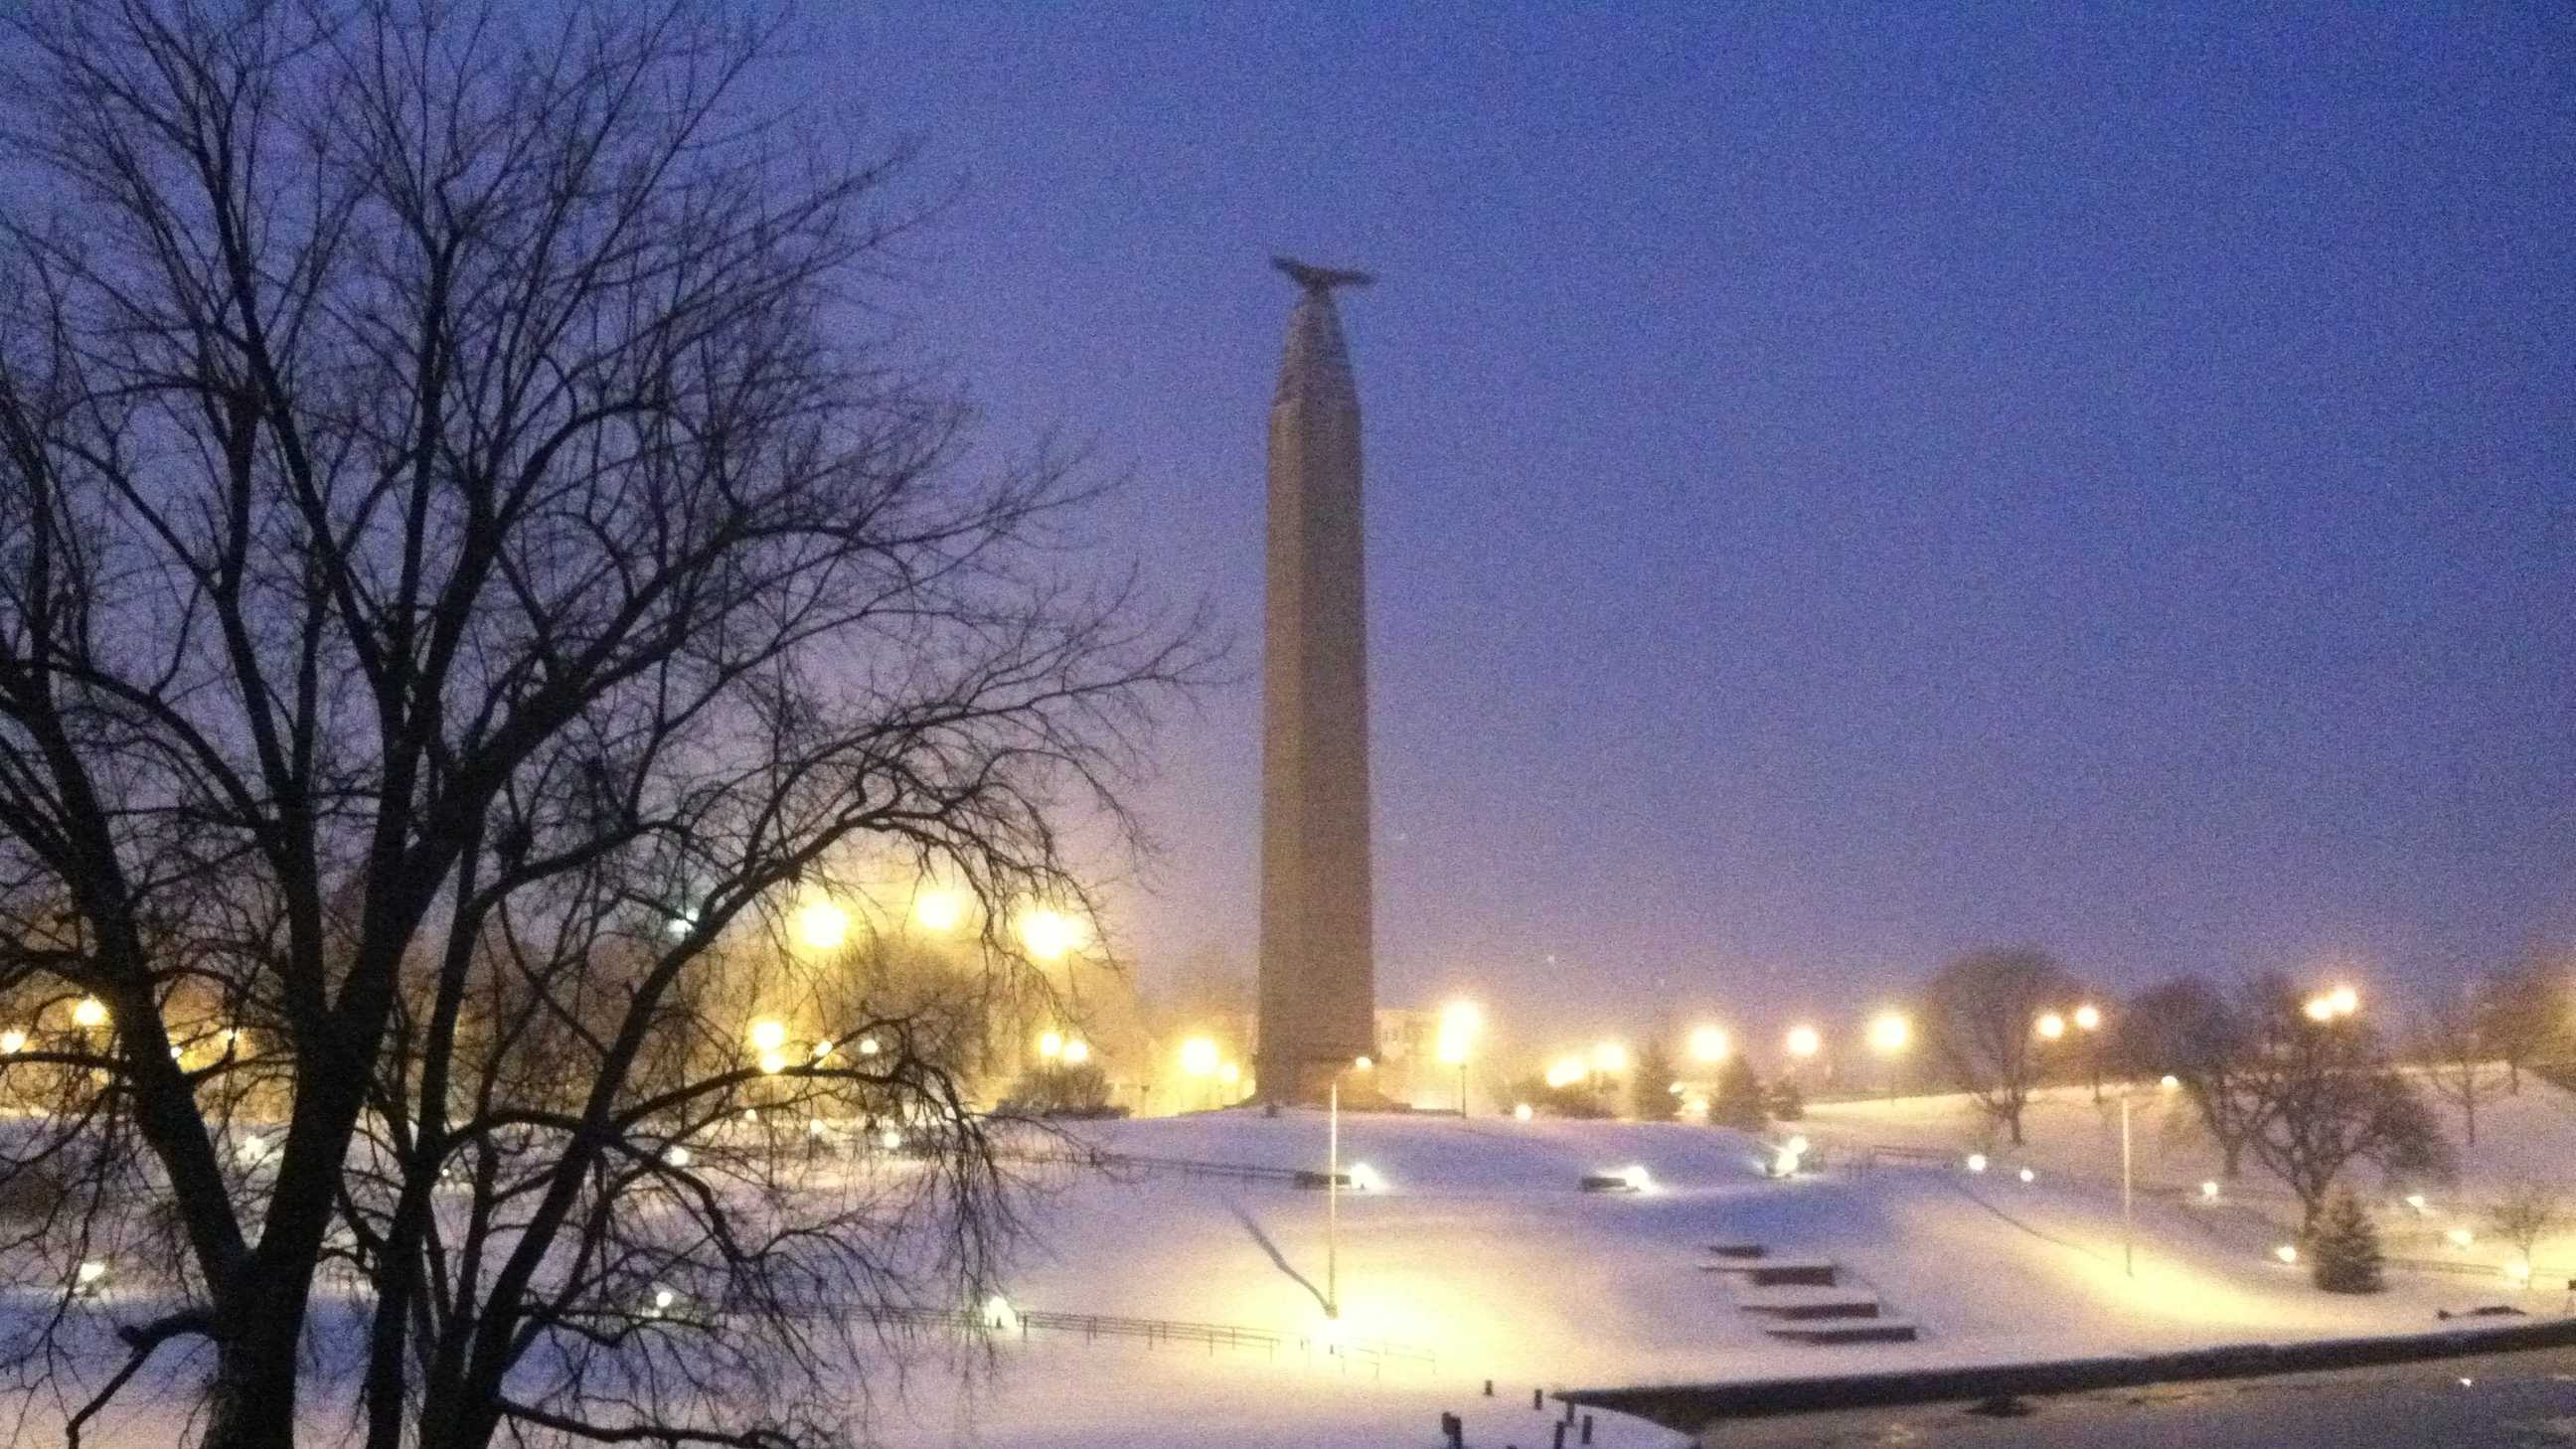 The monument is now surrounded by white as the snow began to fall early this morning.